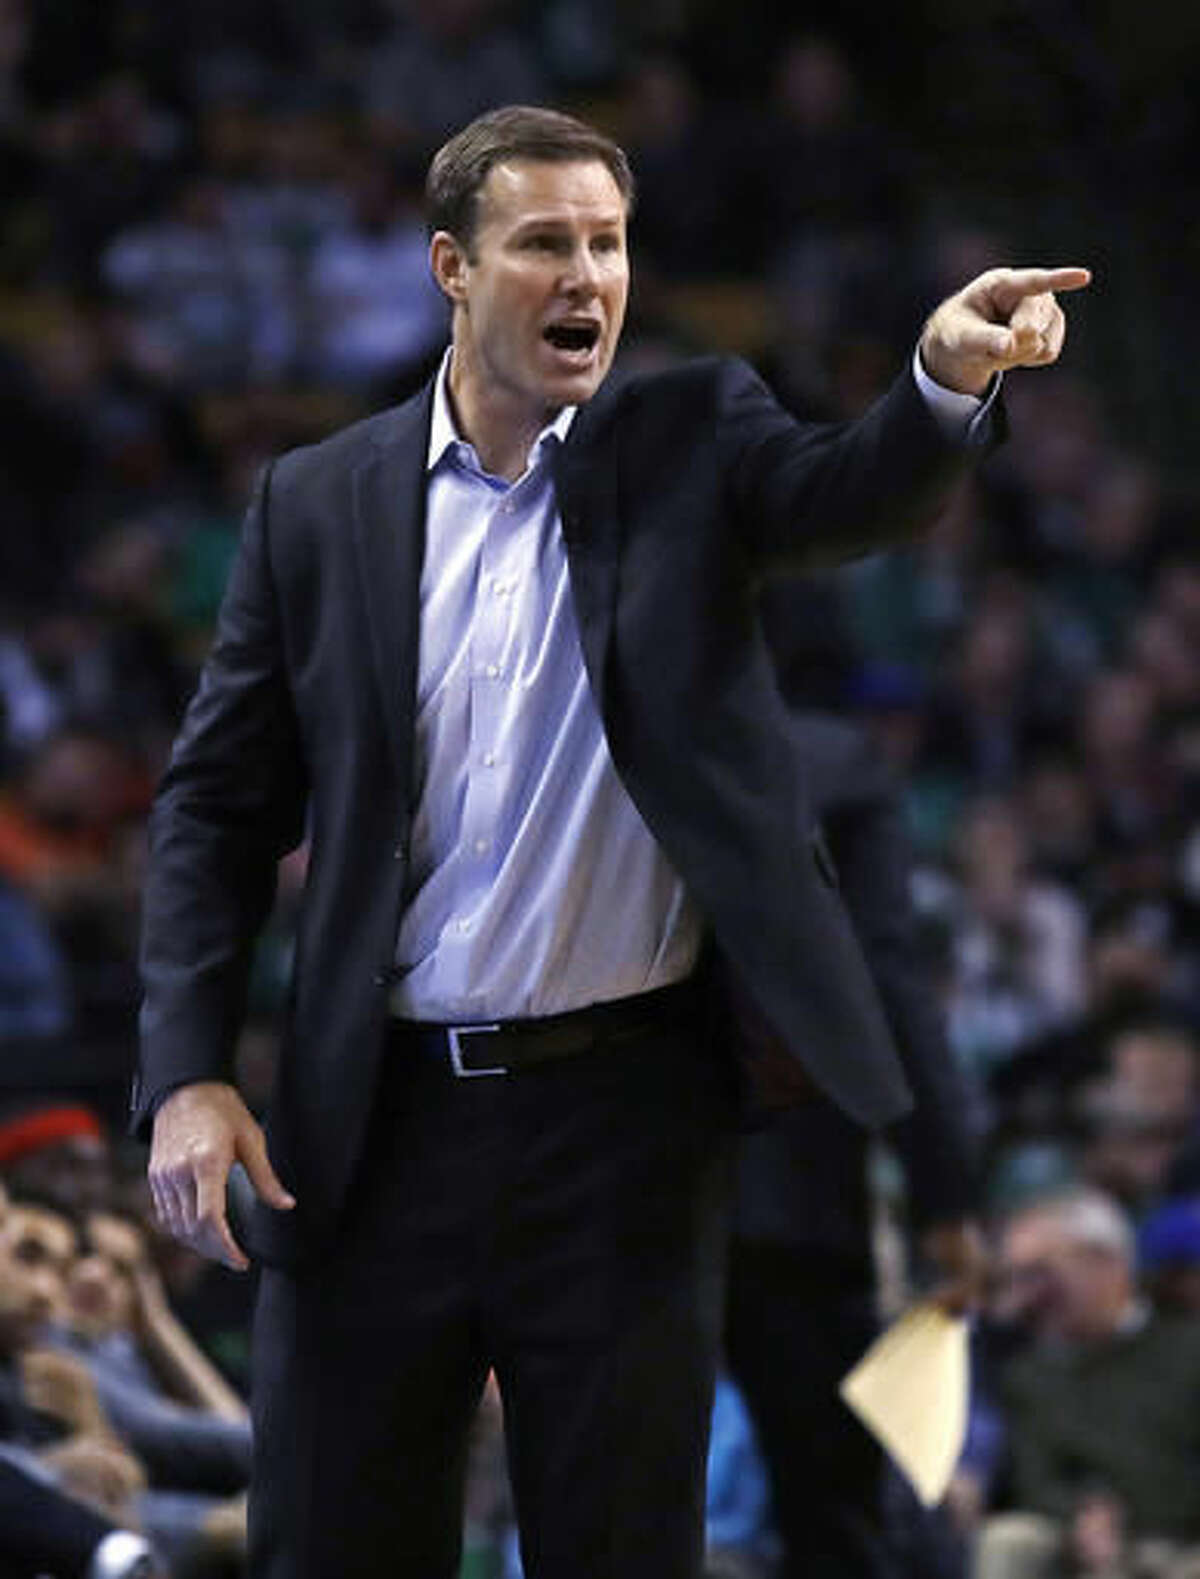 Chicago Bulls coach Fred Hoiberg calls to his players during the first quarter of an NBA basketball game against the Boston Celtics in Boston, Wednesday, Nov. 2, 2016. (AP Photo/Charles Krupa)